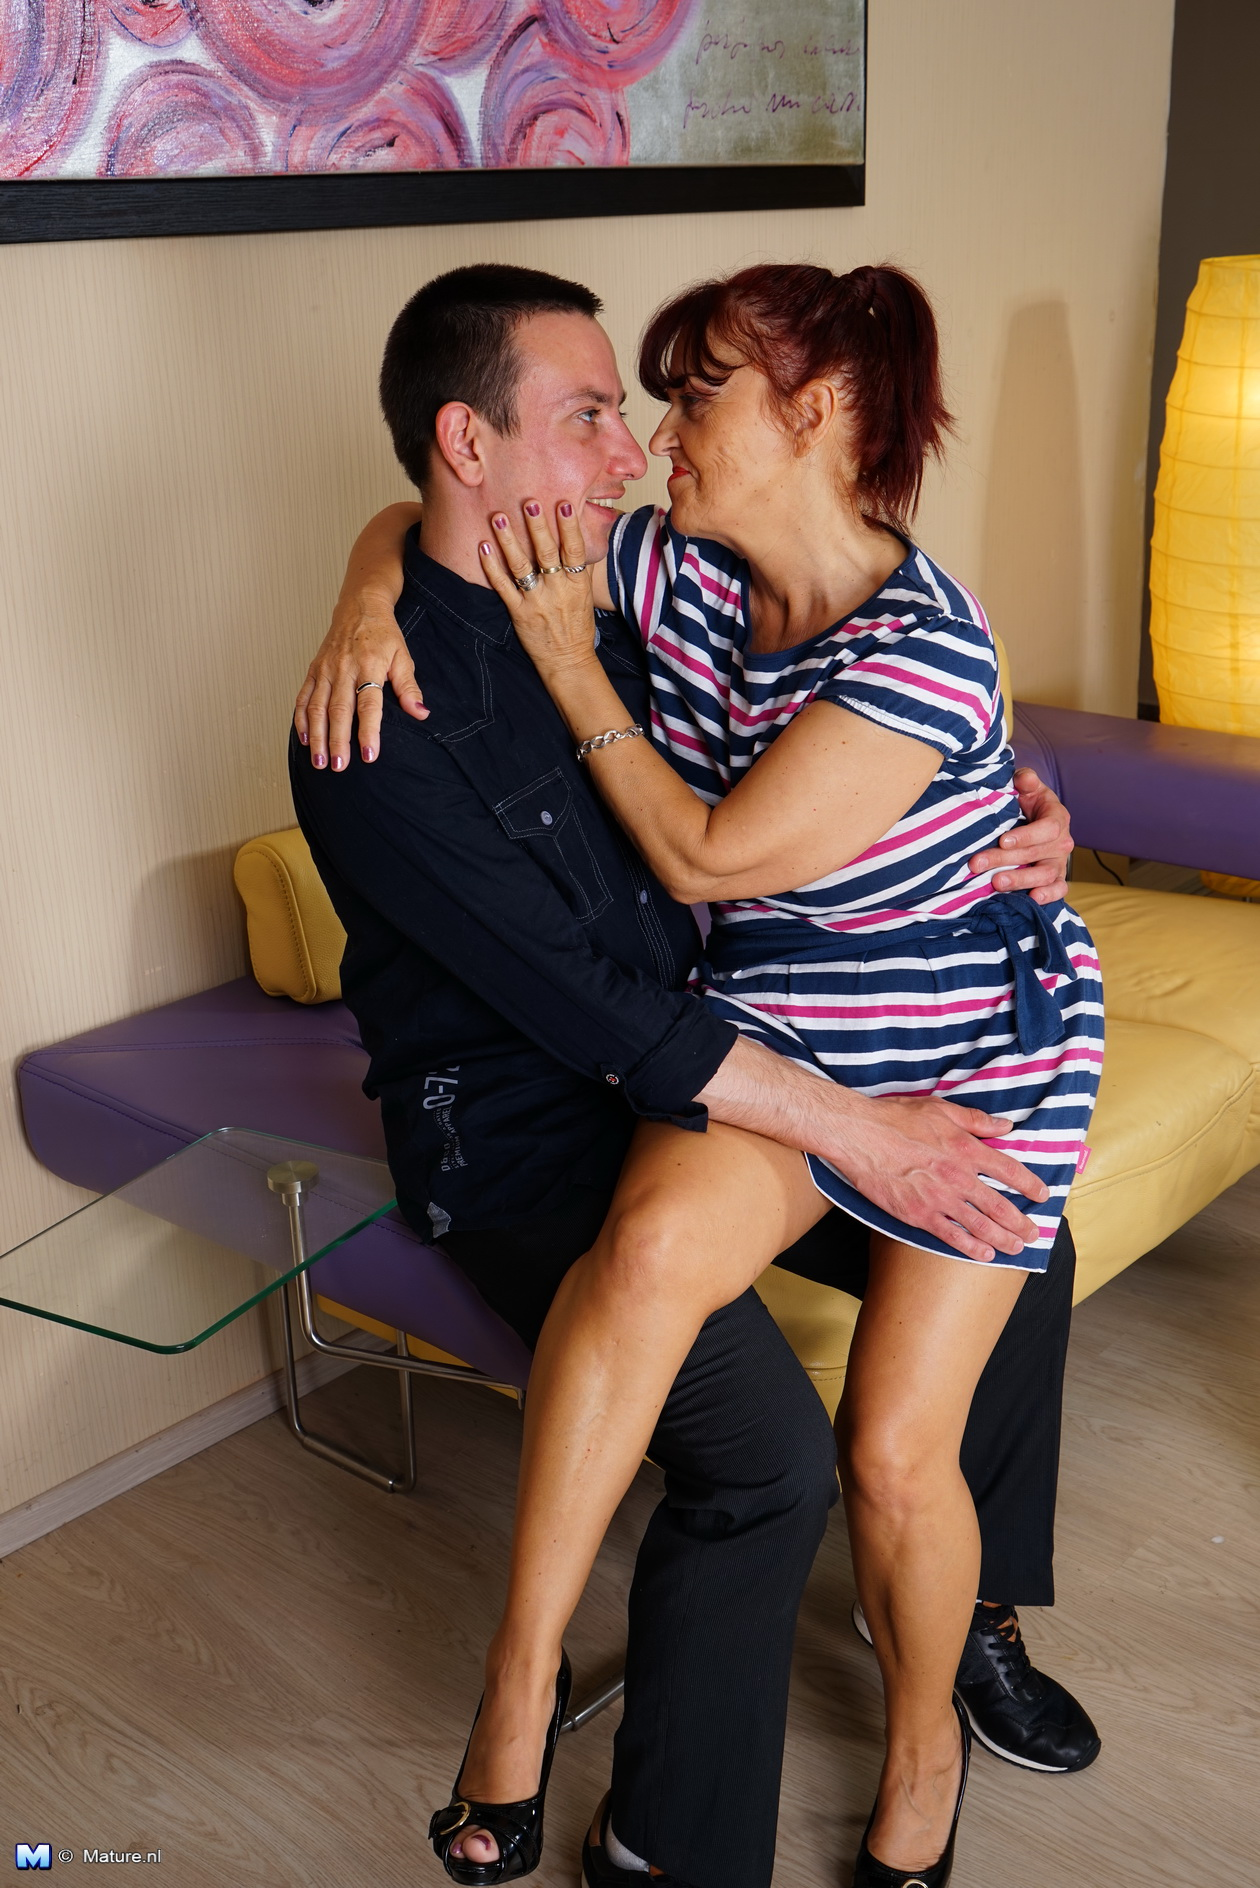 Horny housewife playing with her boy toy